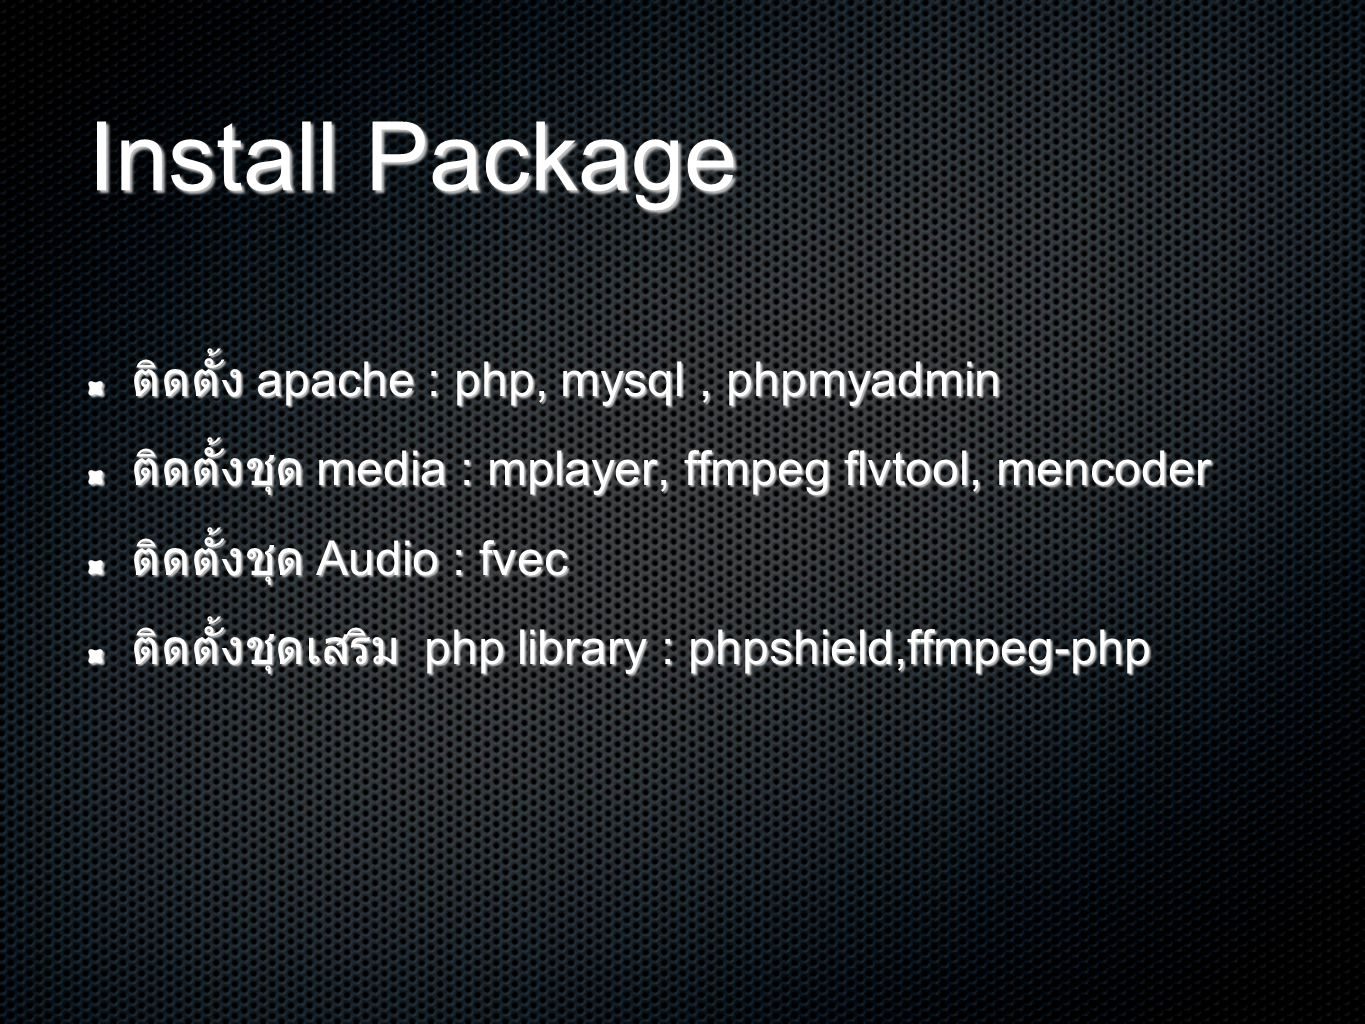 Install Package ติดตั้ง apache : php, mysql, phpmyadmin ติดตั้งชุด media : mplayer, ffmpeg flvtool, mencoder ติดตั้งชุด Audio : fvec ติดตั้งชุดเสริม php library : phpshield,ffmpeg-php